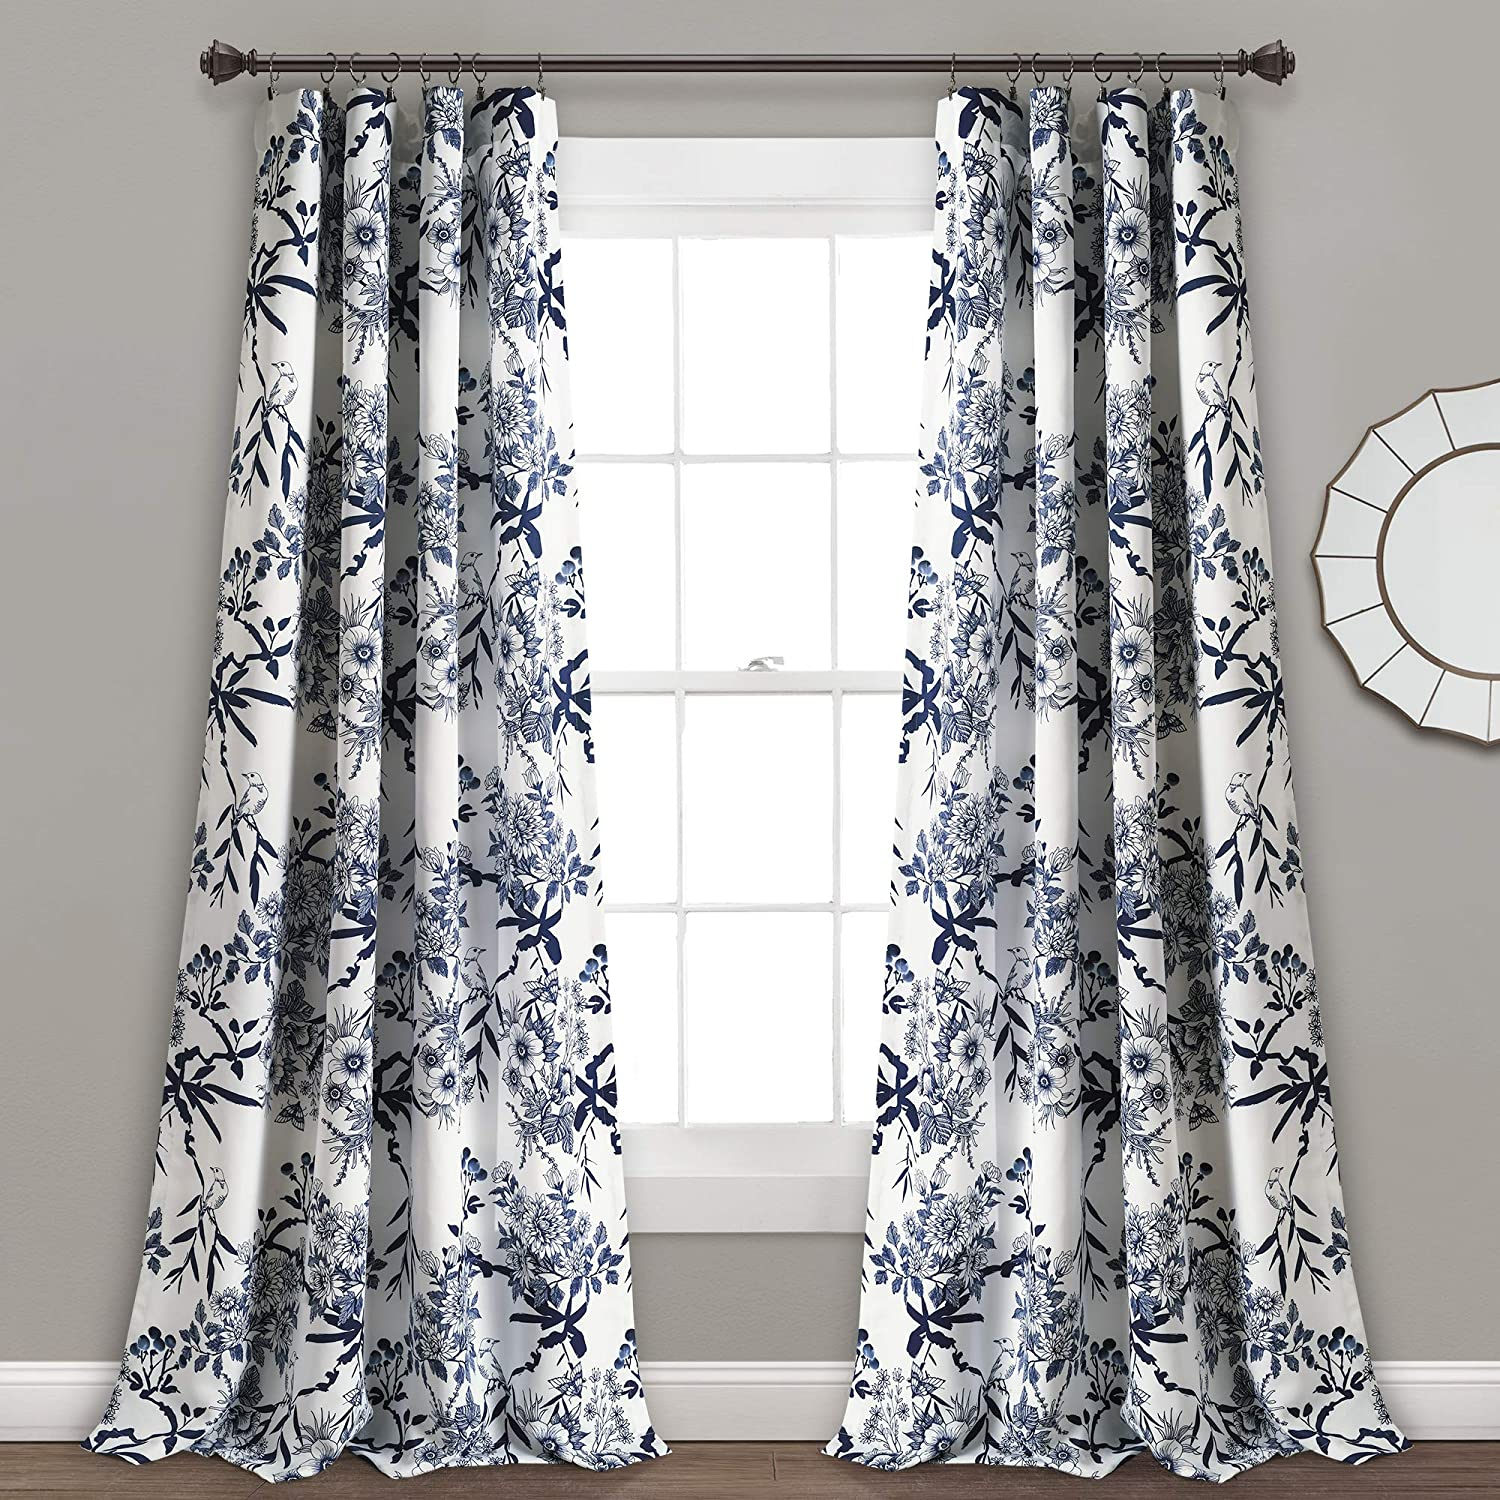 "Lush Decor, Navy Botanical Garden Curtains Floral Bird Print Room Darkening Window Panel Drapes Set for Living, Dining, Bedroom (Pair), 84"" x 52"""